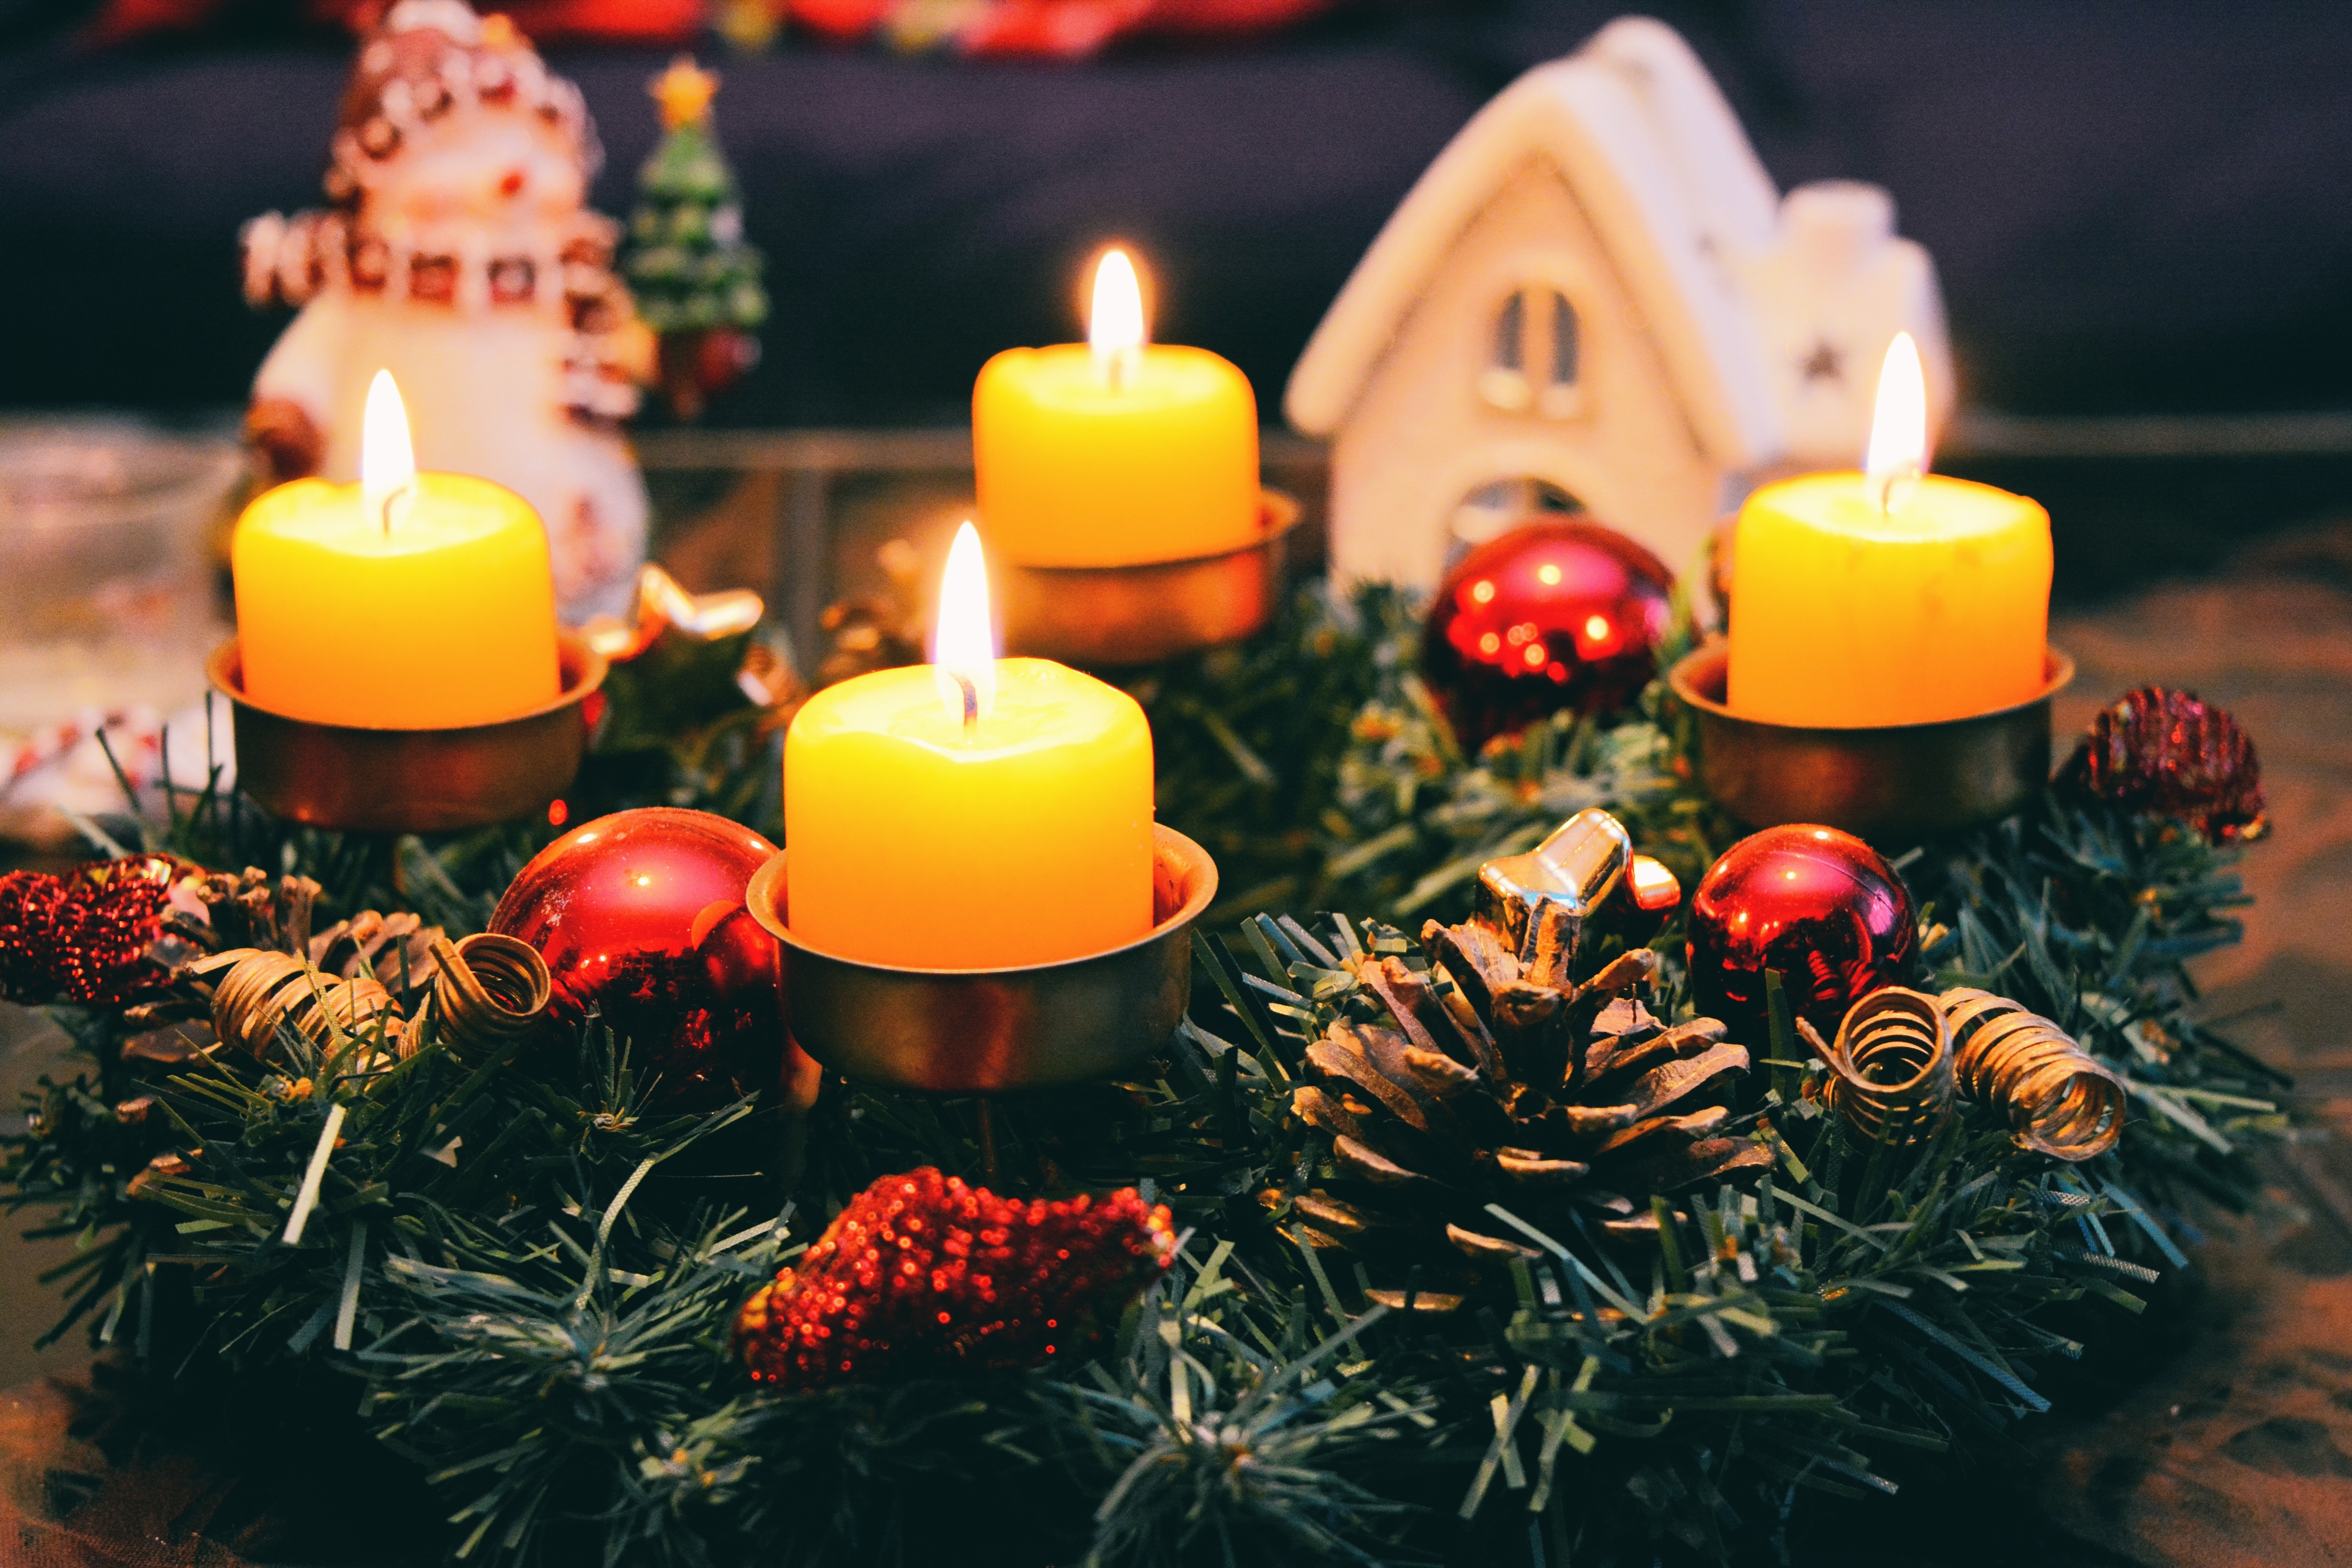 Four yellow advent candles in a green wreath on a table